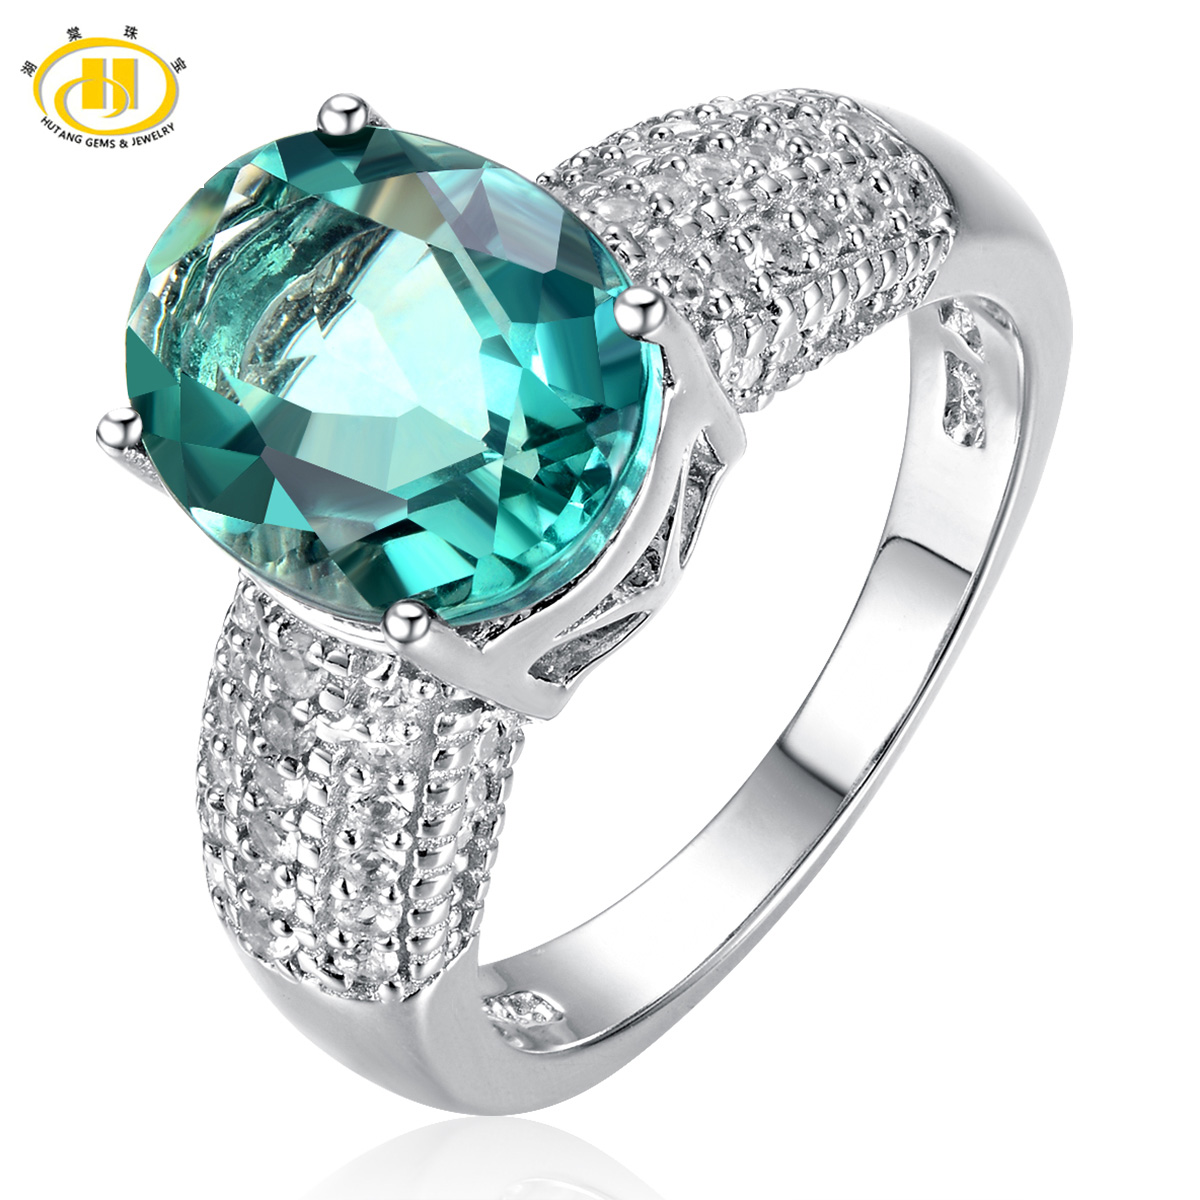 Trendy 925 Silver White Topaz Cocktail Ring Women Wedding Engagement Party Gift